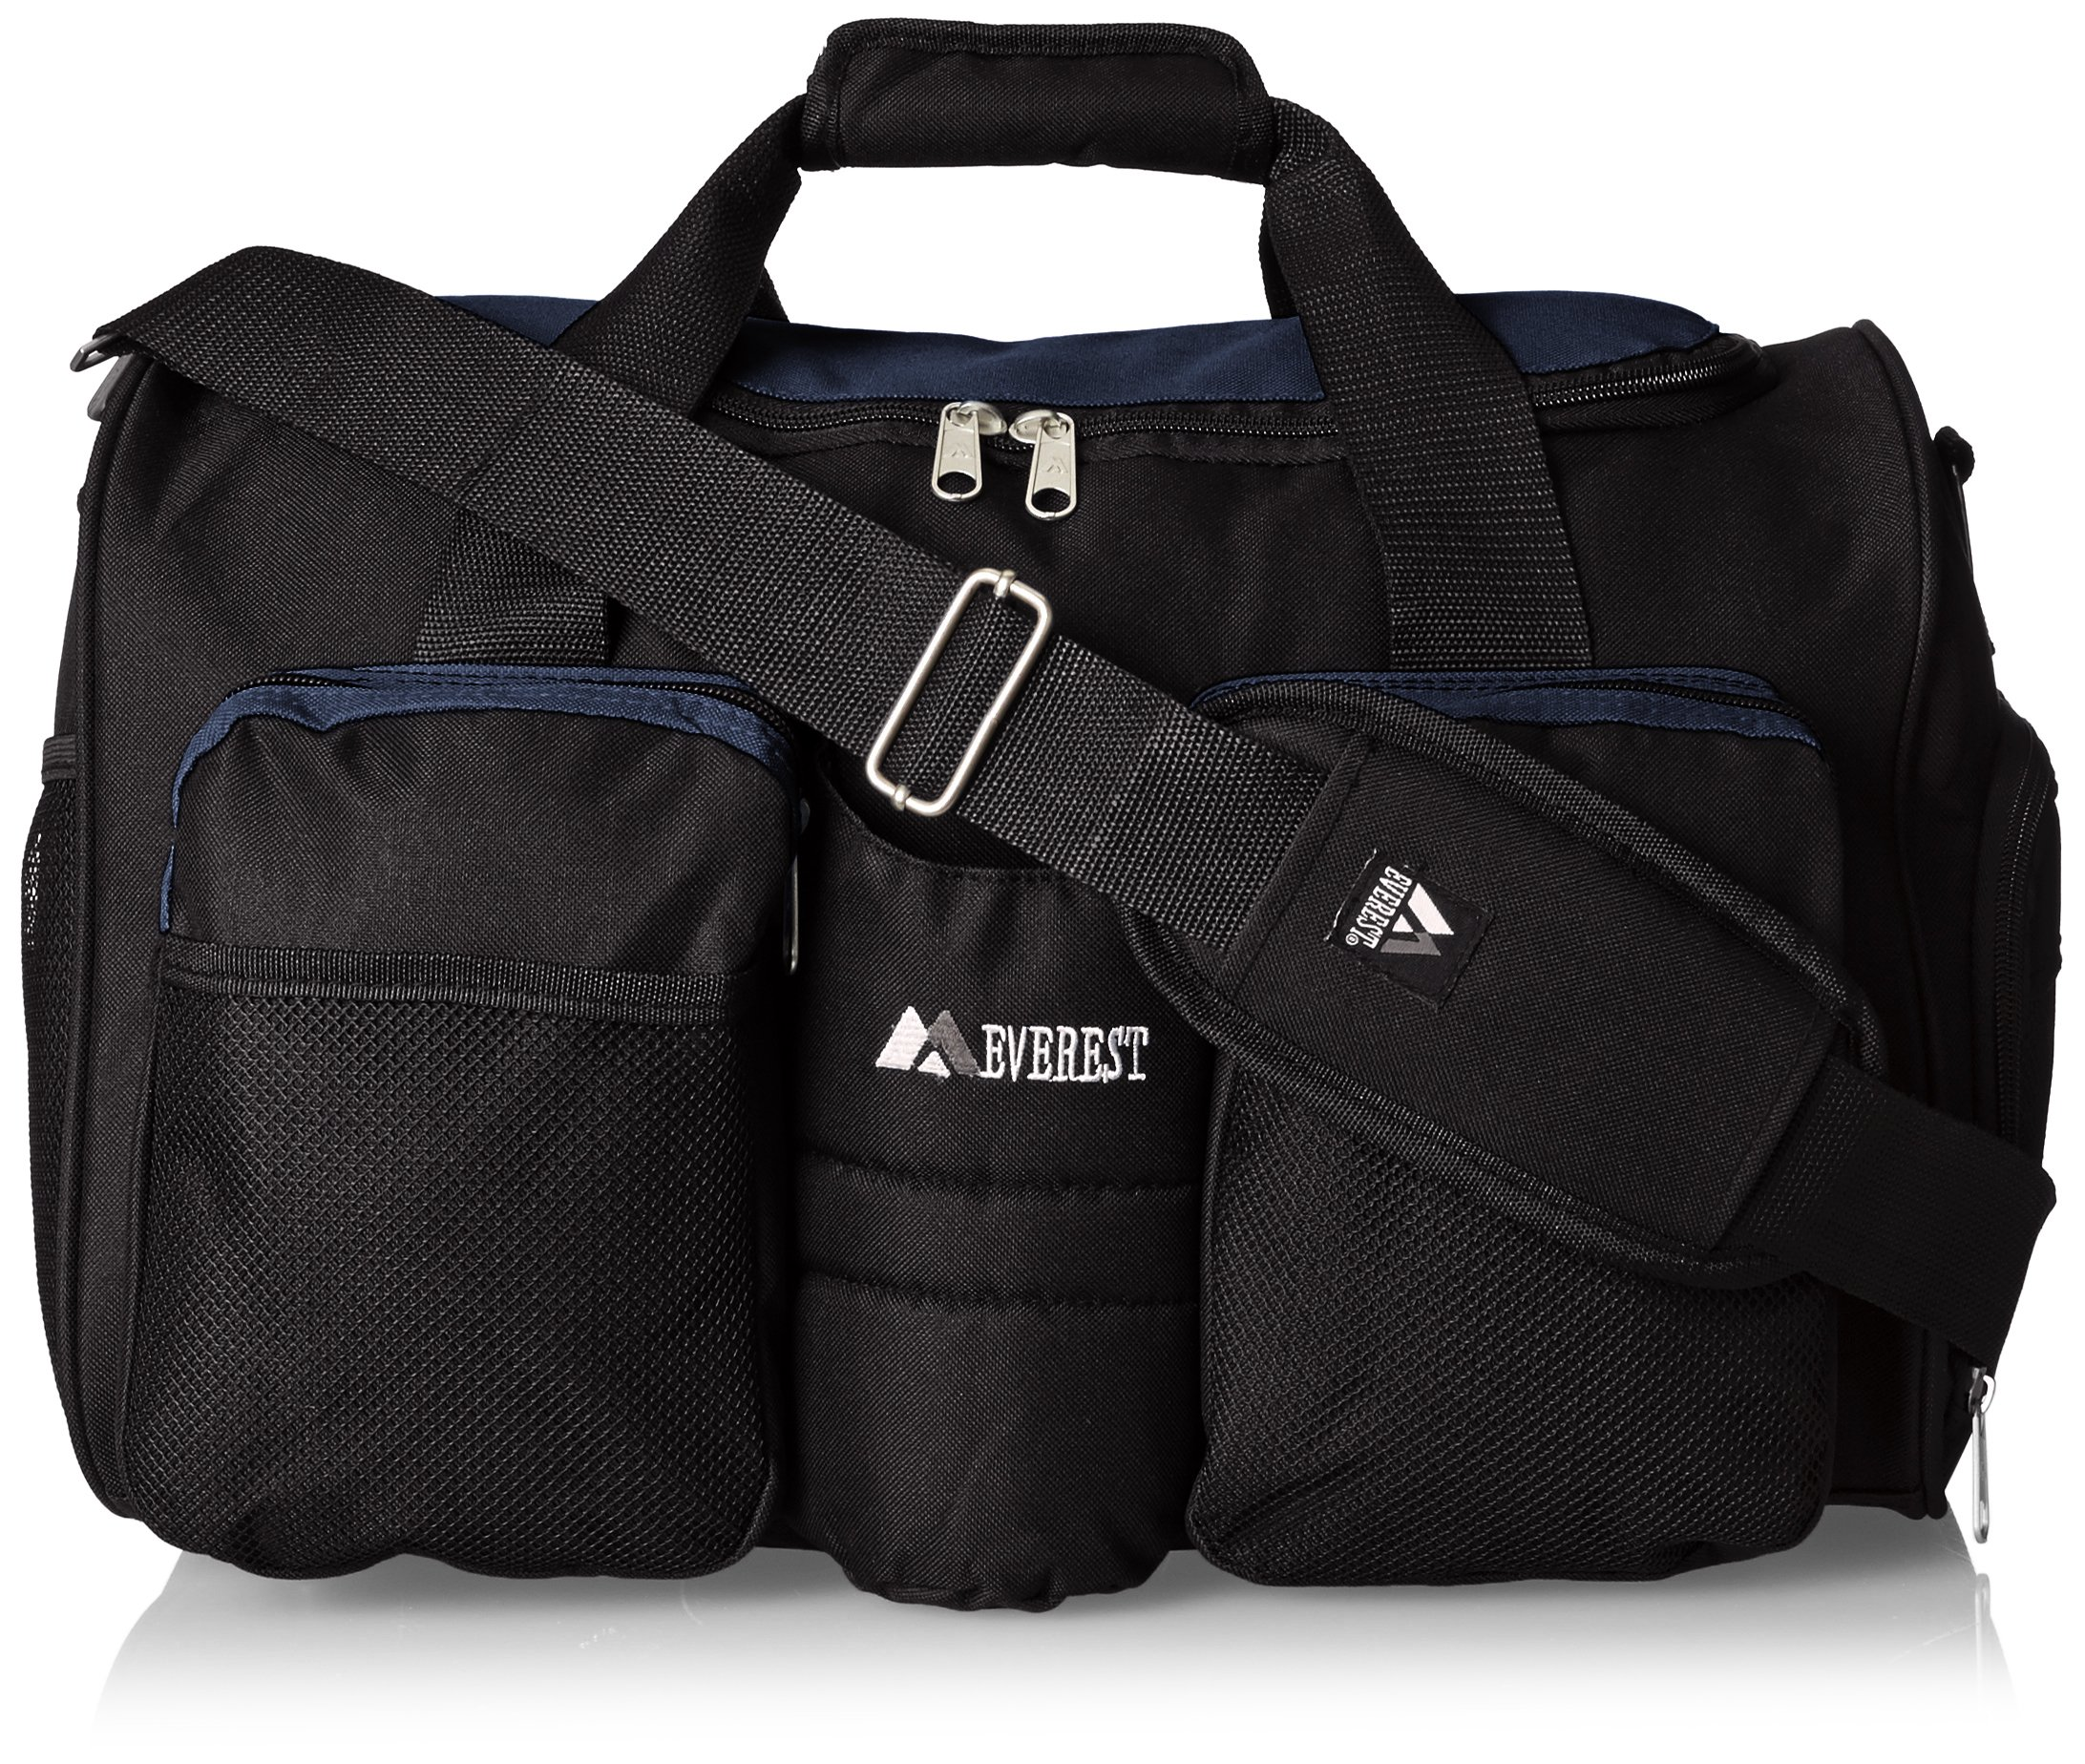 Everest Gym Bag with Wet Pocket, Navy, One Size